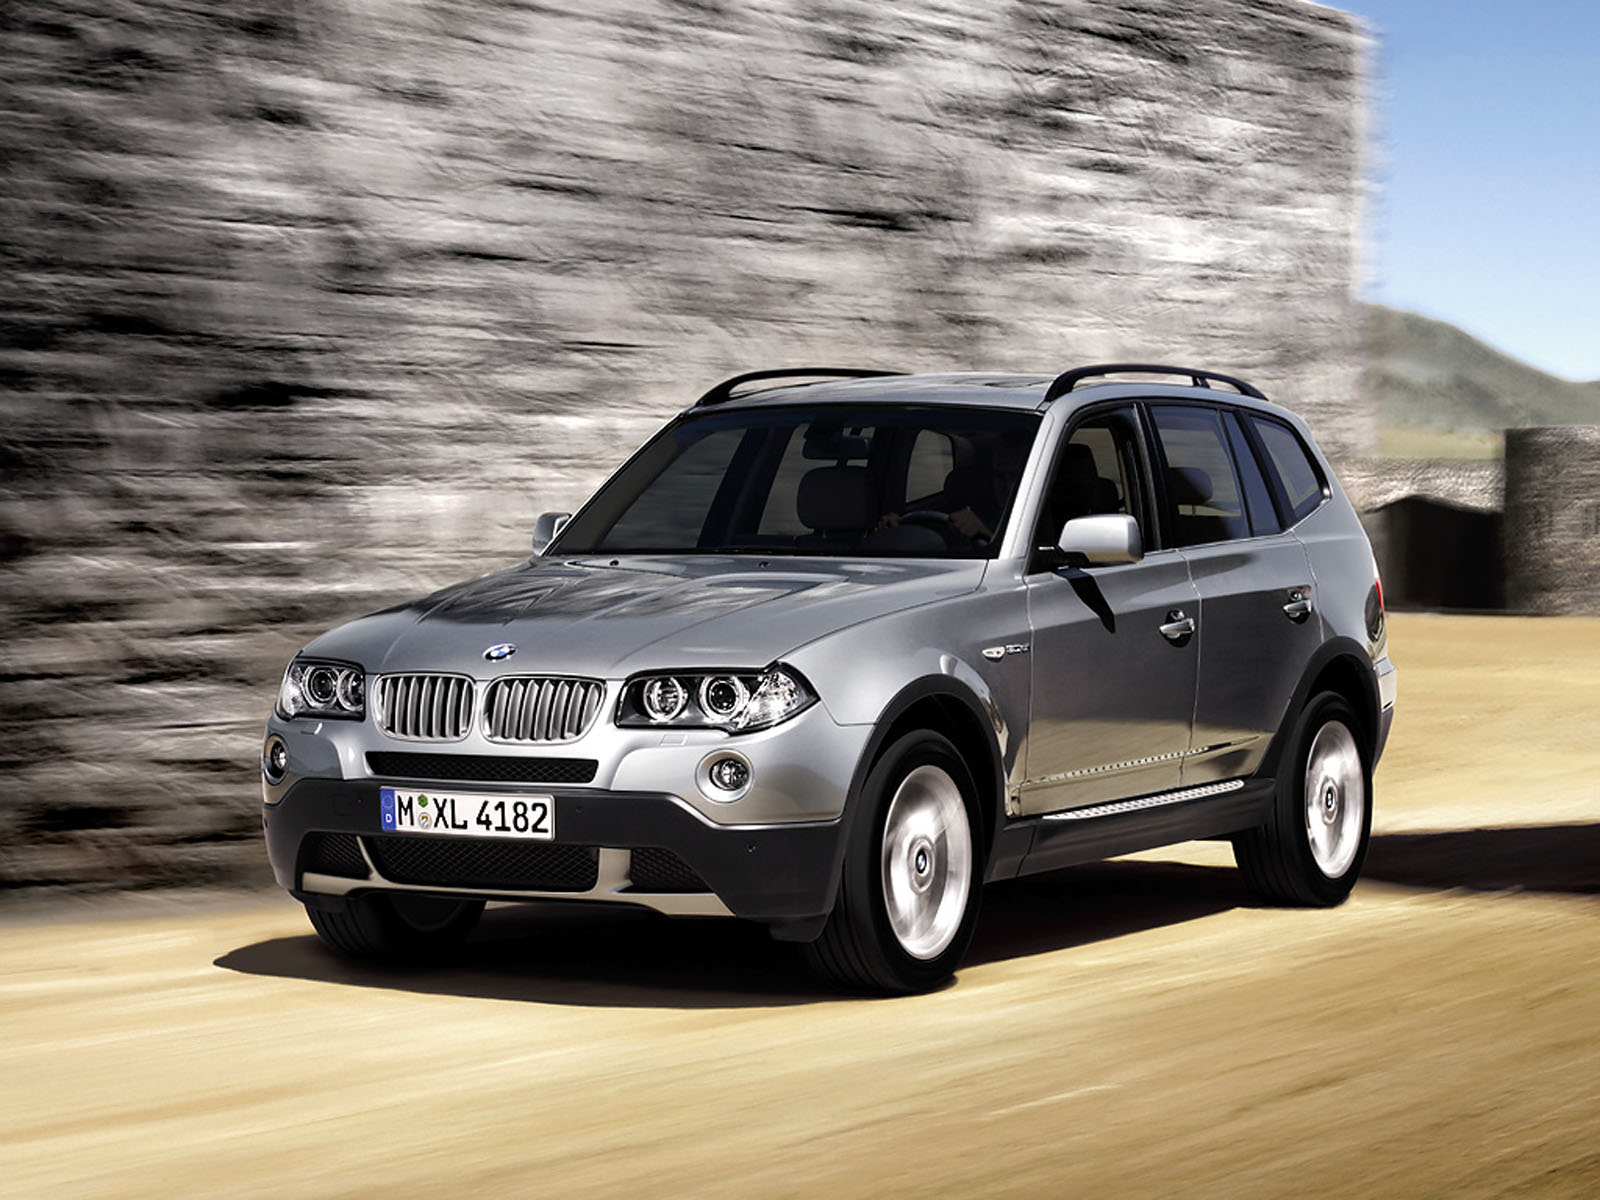 Wallpapers: BMW X3 Cars Wallpapers